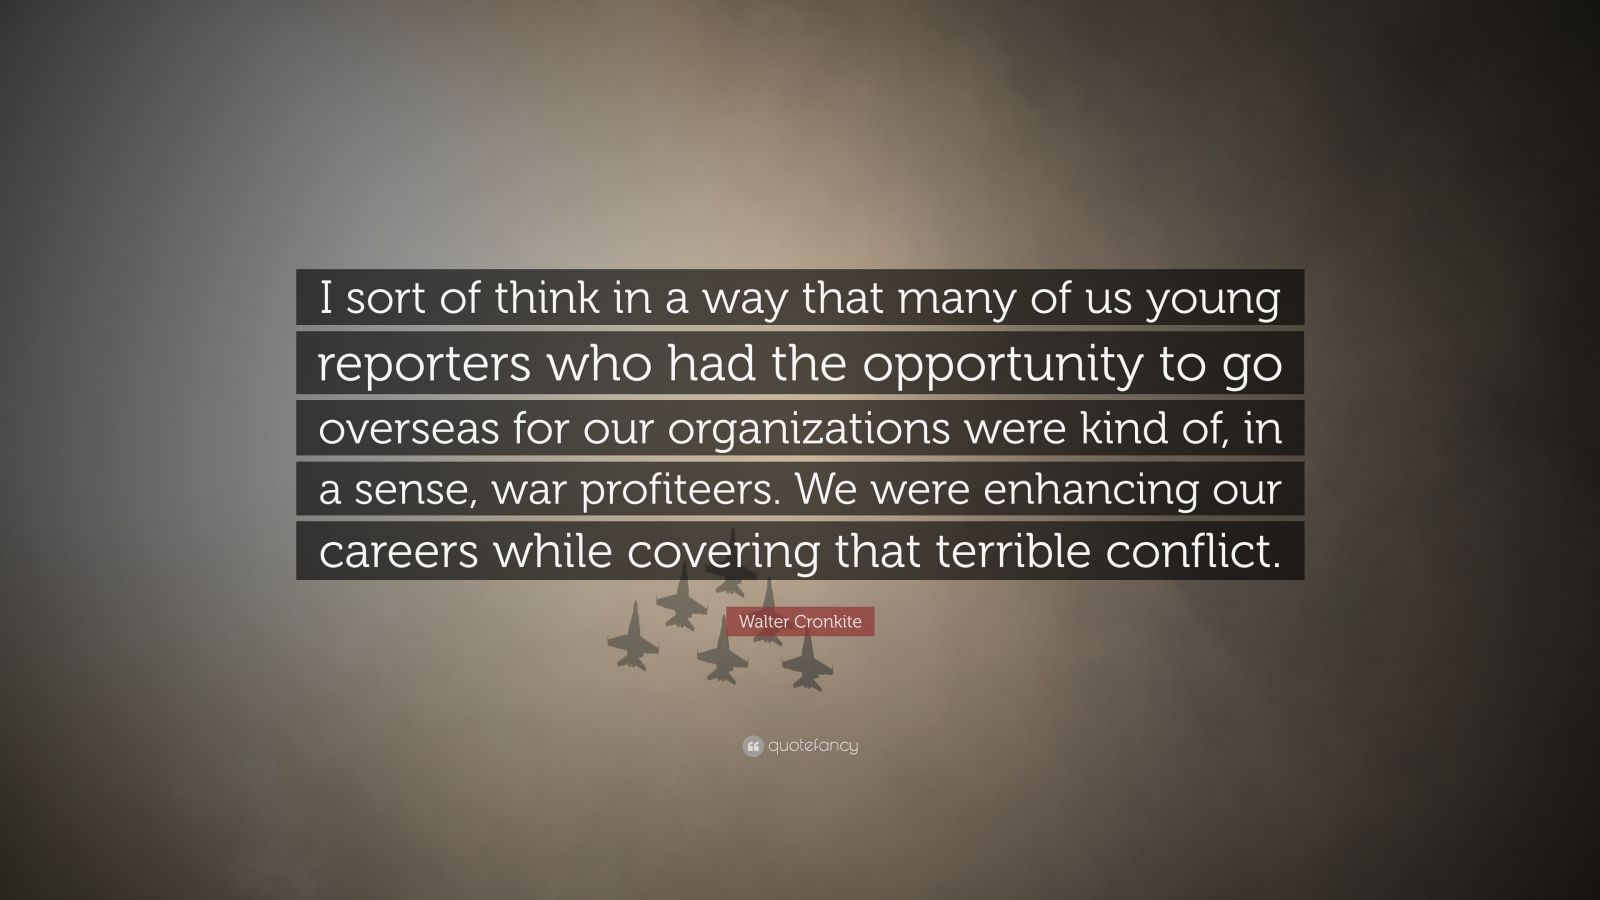 """Walter Cronkite Quote: """"I sort of think in a way that many of us young reporters who had the opportunity to go overseas for our organizations were kind of, in a sense, war profiteers. We were enhancing our careers while covering that terrible conflict."""""""